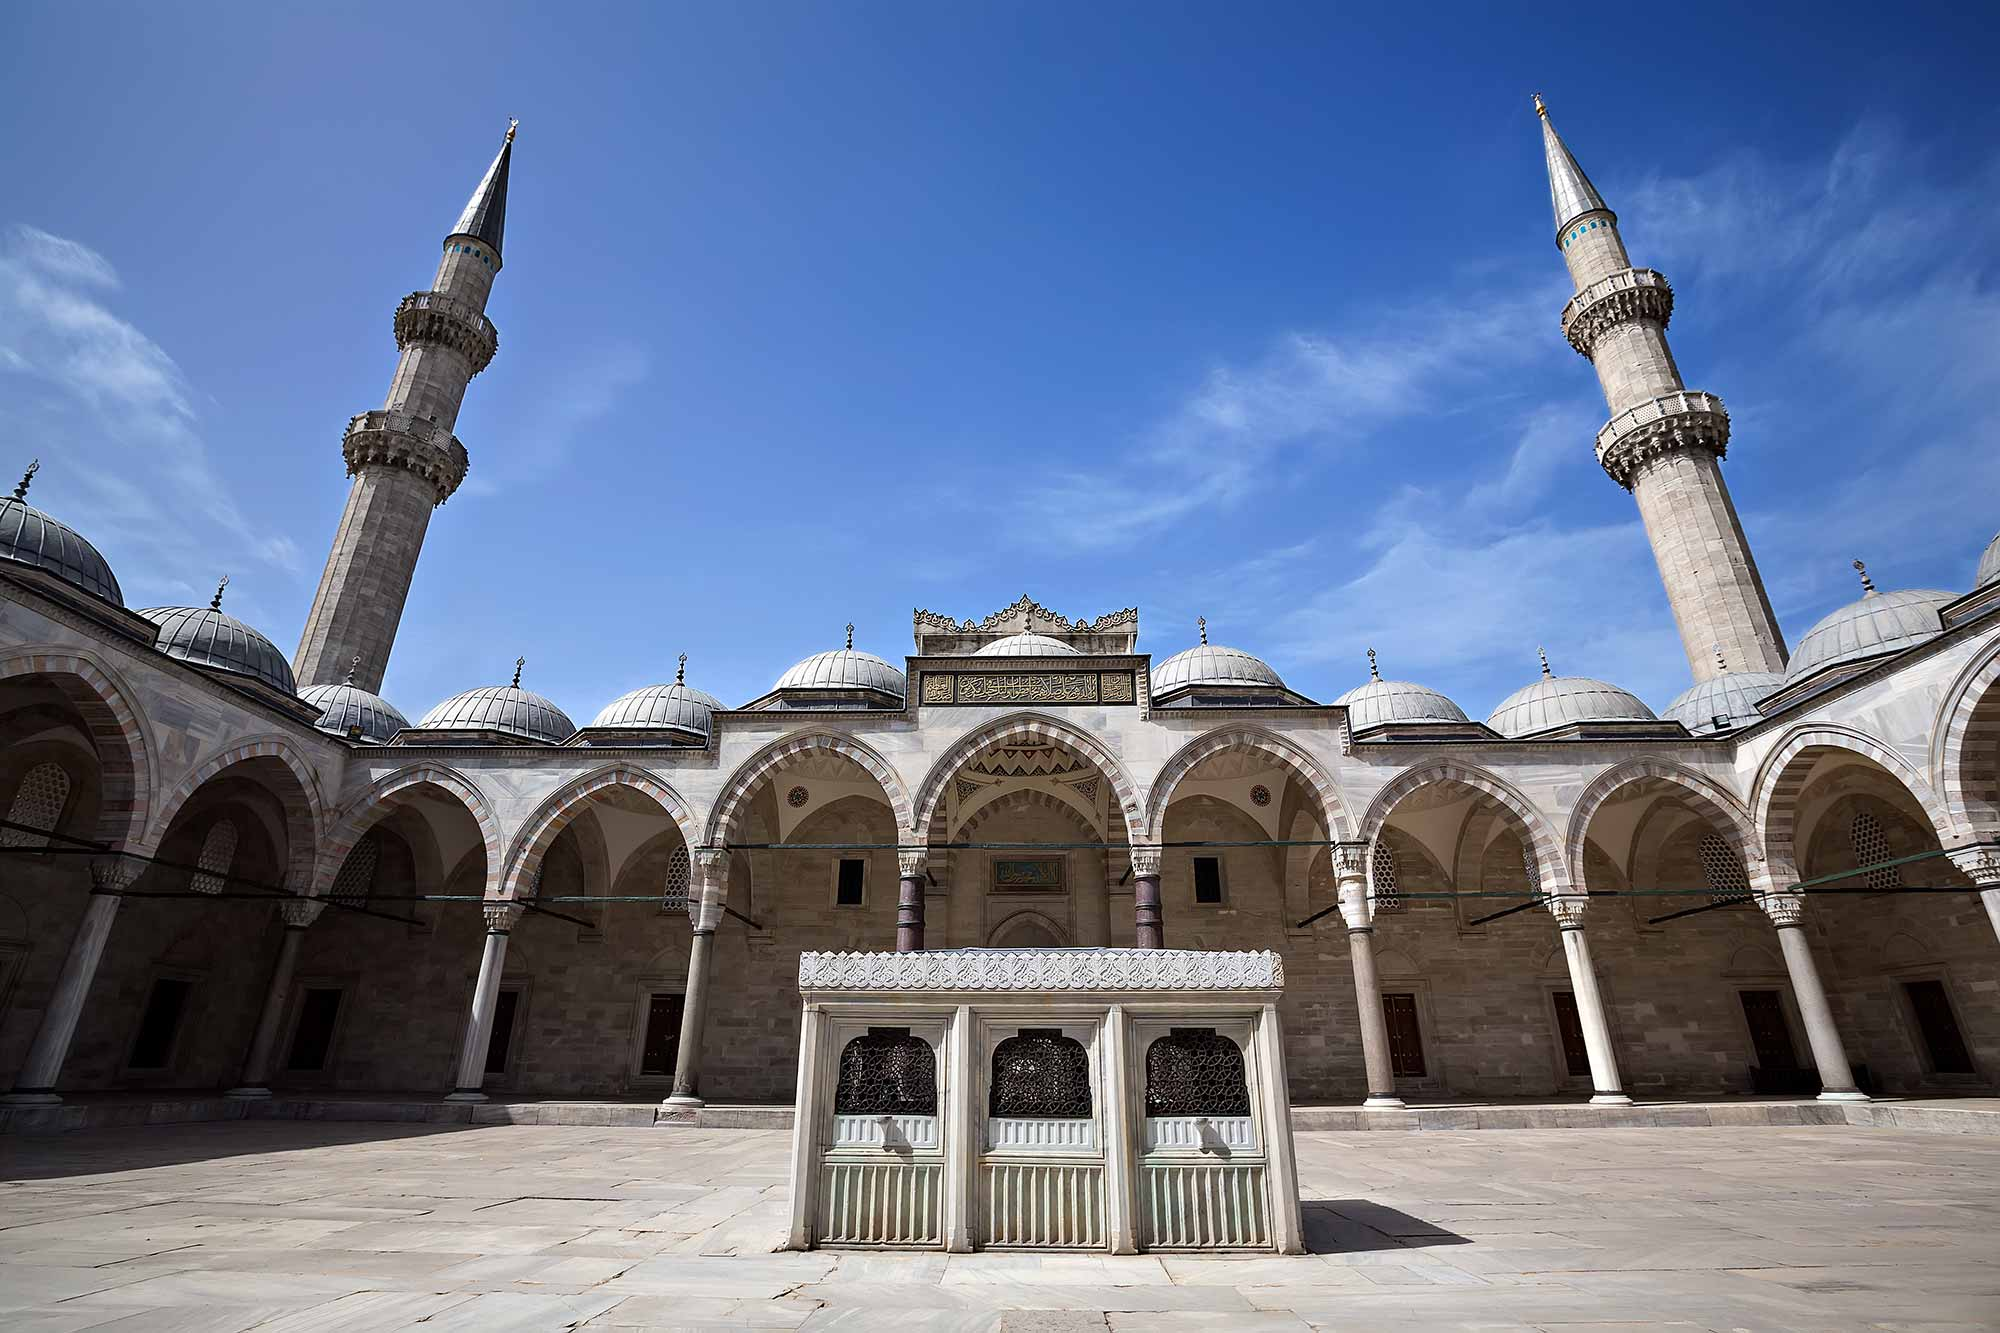 The Courtyard of Süleymaniye Mosque in Istanbul, Turkey. © Ulli Maier & Nisa Maier